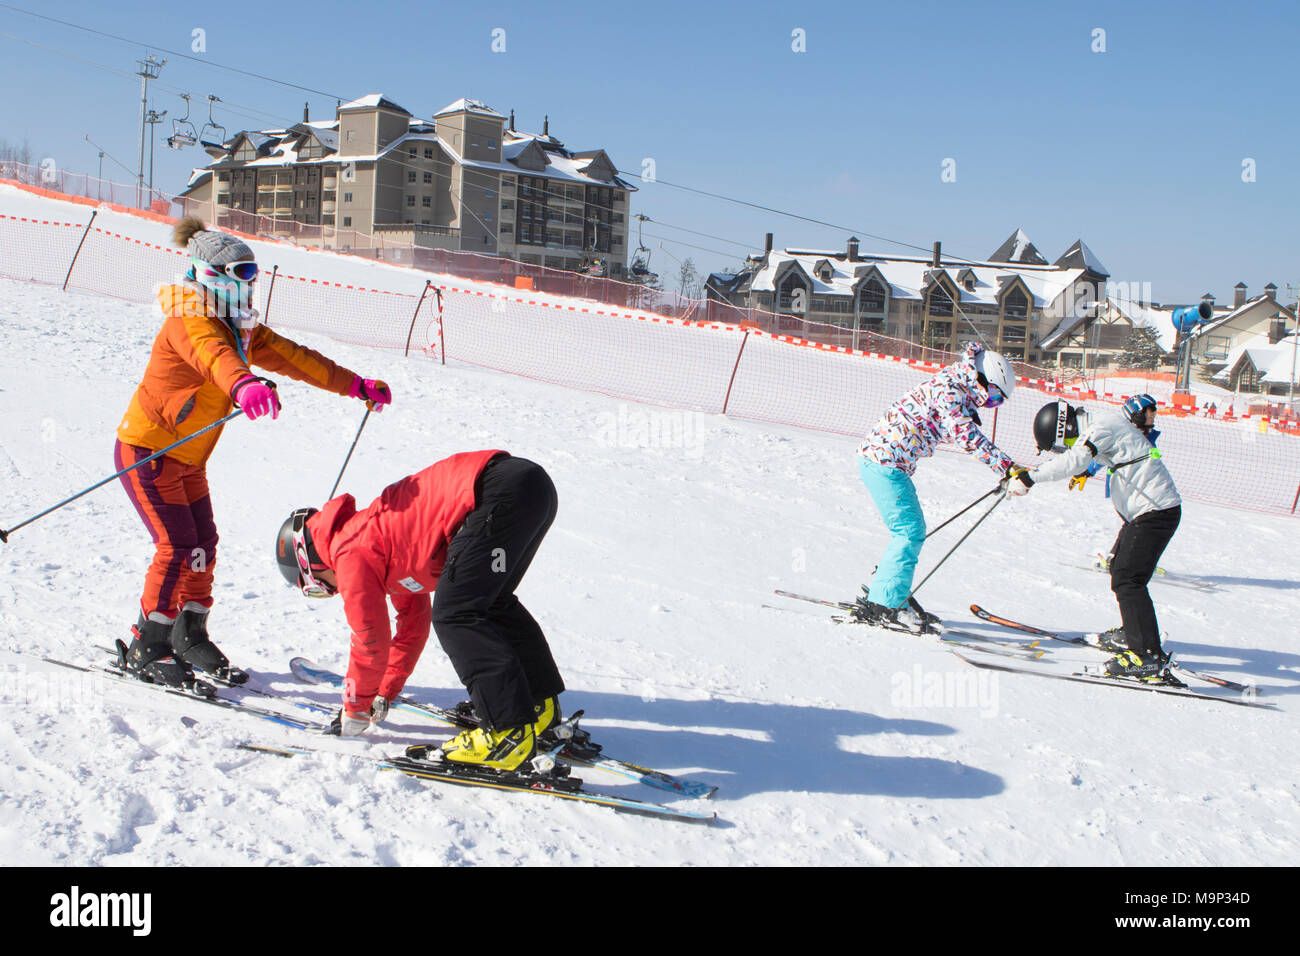 Two women are being taught how to ski on a mellow ski slope of the Alpensia resort in the Gangwon-do region of South Korea.  The Alpensia Resort is a ski resort and a tourist attraction. It is located on the territory of the township of Daegwallyeong-myeon, in the county of Pyeongchang, hosting the Winter Olympics in February 2018.  The ski resort is approximately 2.5 hours from Seoul or Incheon Airport by car, predominantly all motorway.   Alpensia has six slopes for skiing and snowboarding, with runs up to 1.4 km (0.87 mi) long, for beginners and advanced skiers, and an area reserved for - Stock Image